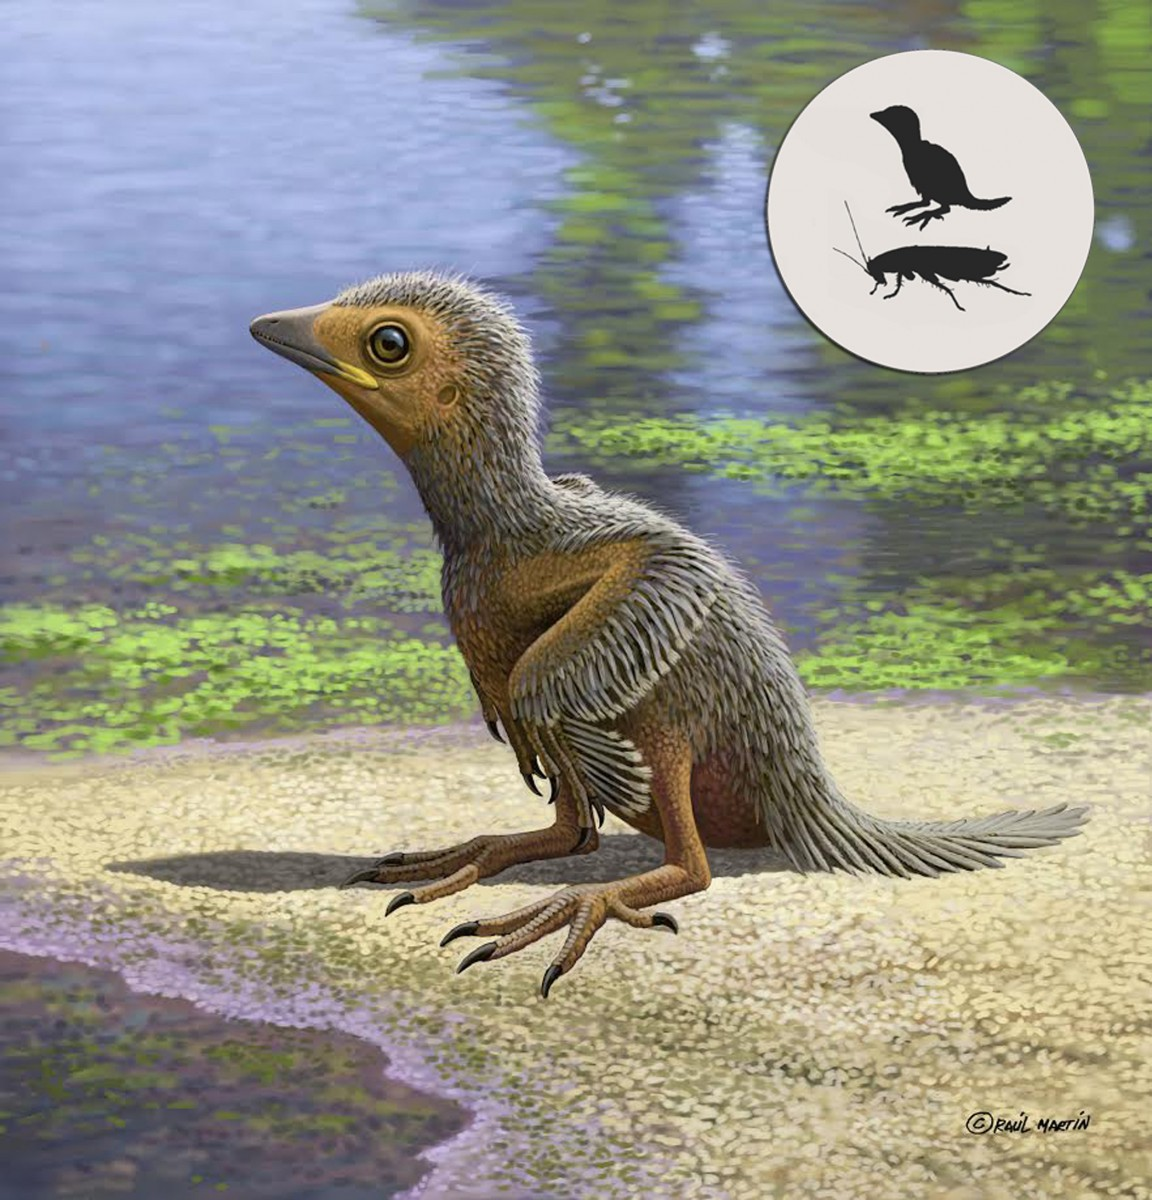 An artist's rendition of the small bird.